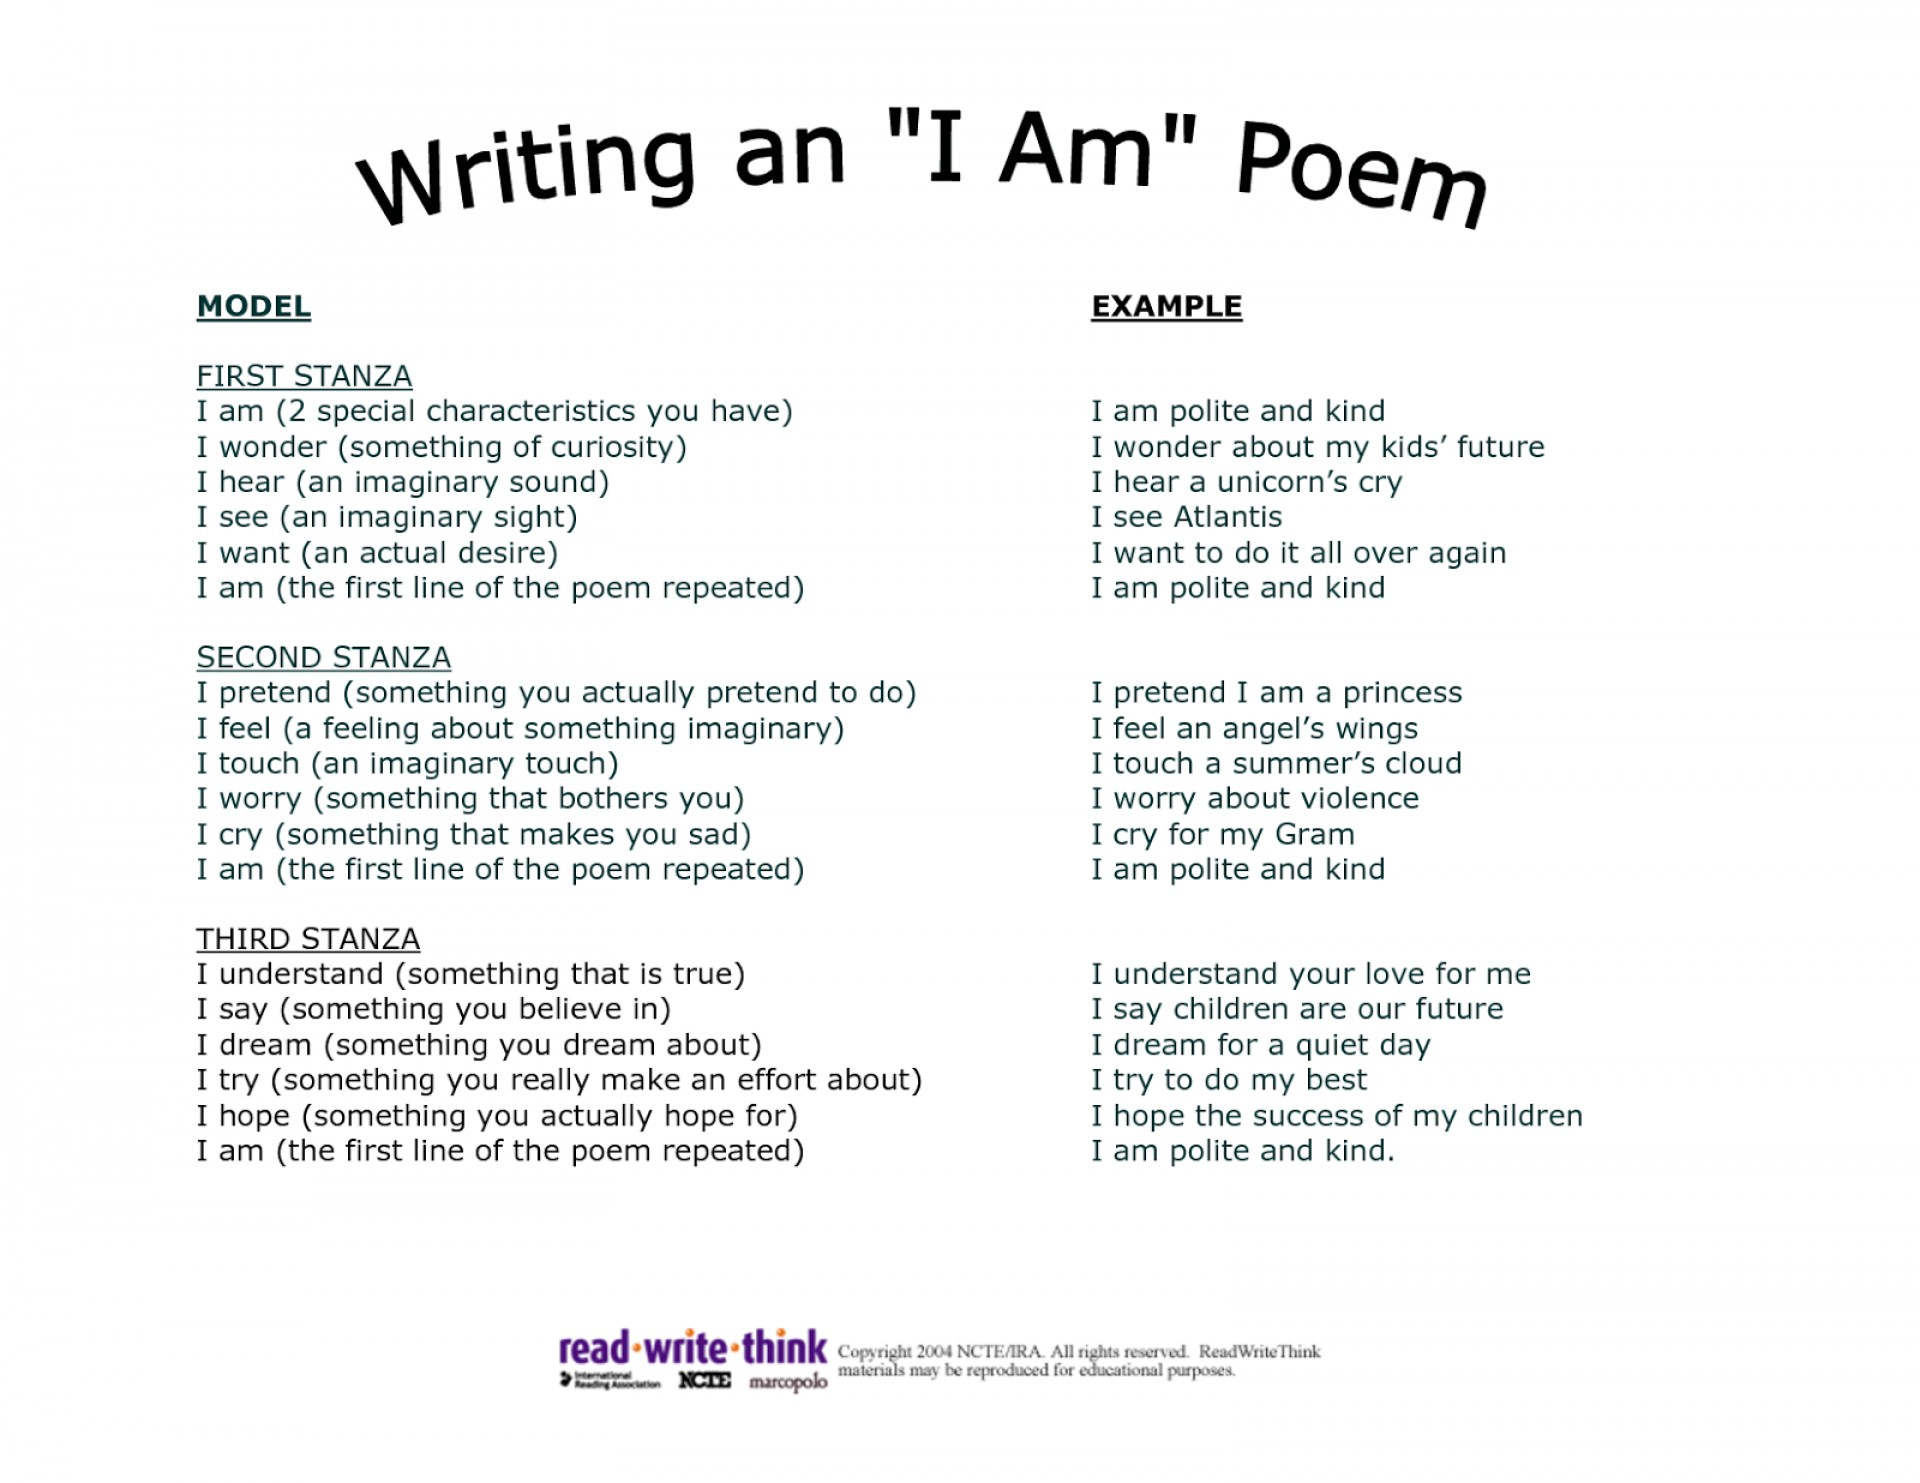 004 i am poem template hti3gt2t essay of who